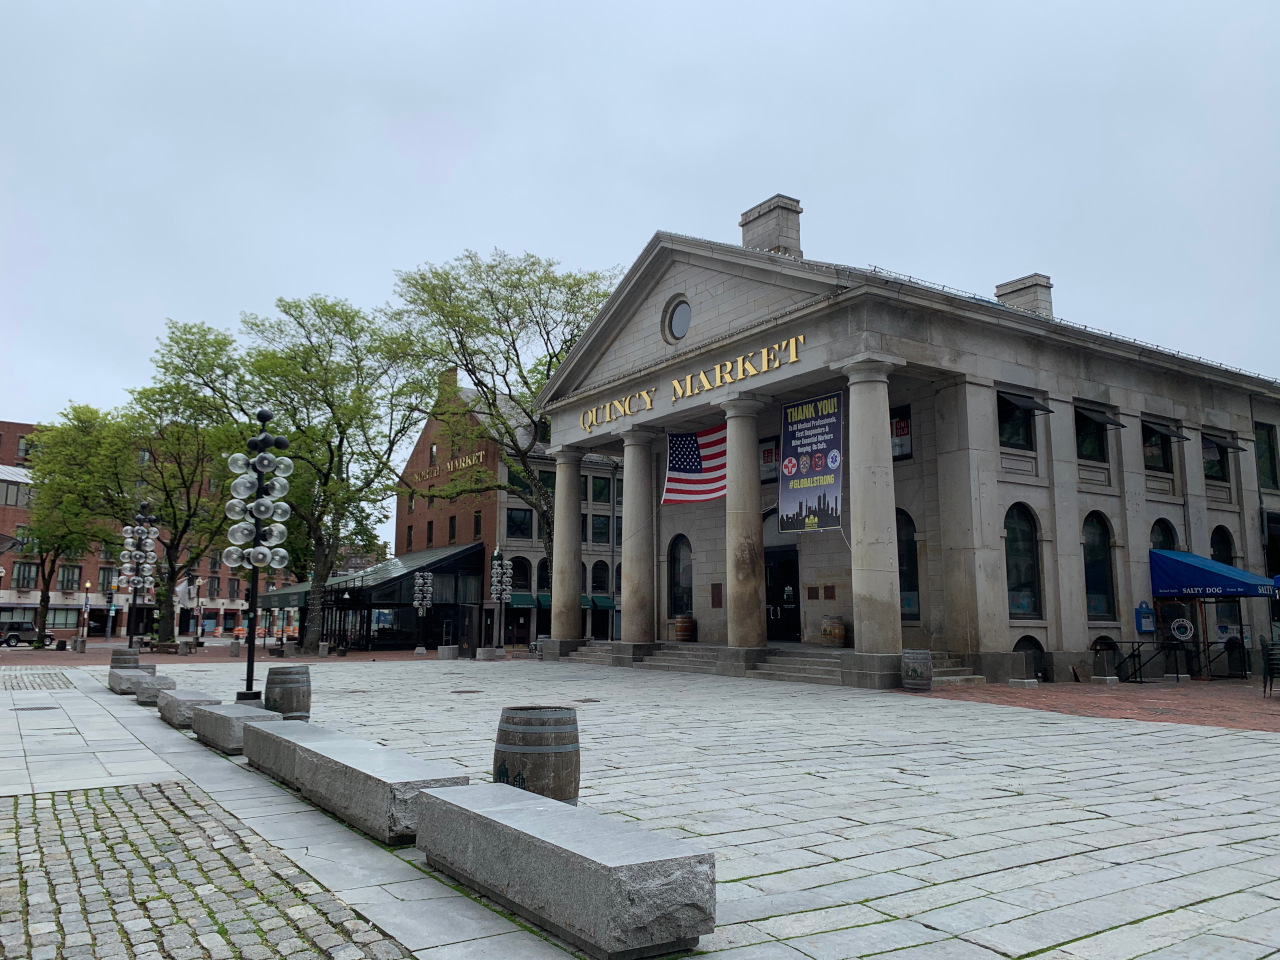 Quincy Market at Faneuil Hall is a good place to stop if you're looking for one of the best places to eat in Boston. Discover 25 restaurants in Boston and things to do in Boston from this article